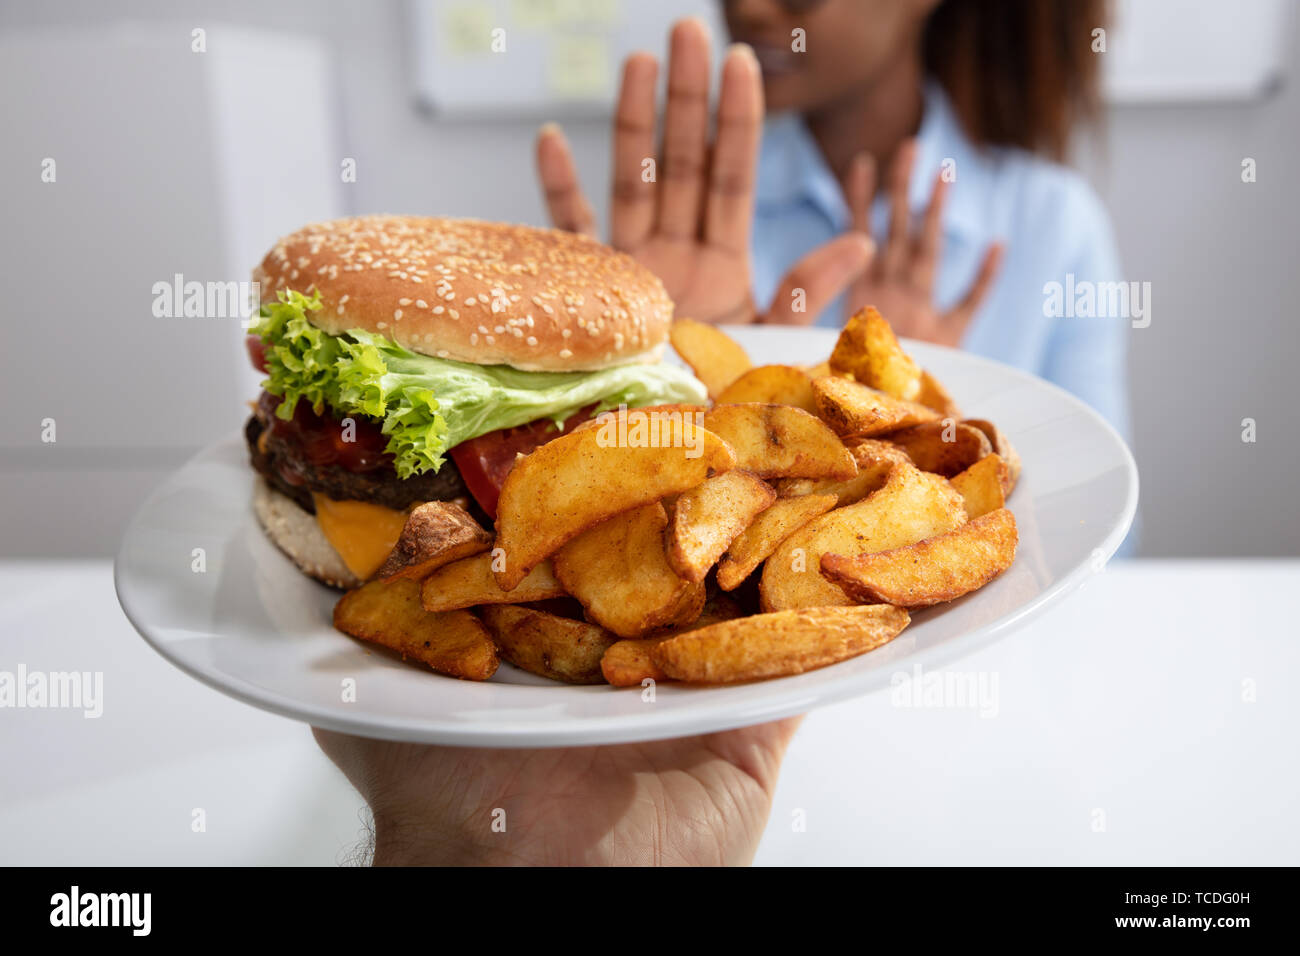 Young Woman Refusing Burger And French Fries On Plate - Stock Image